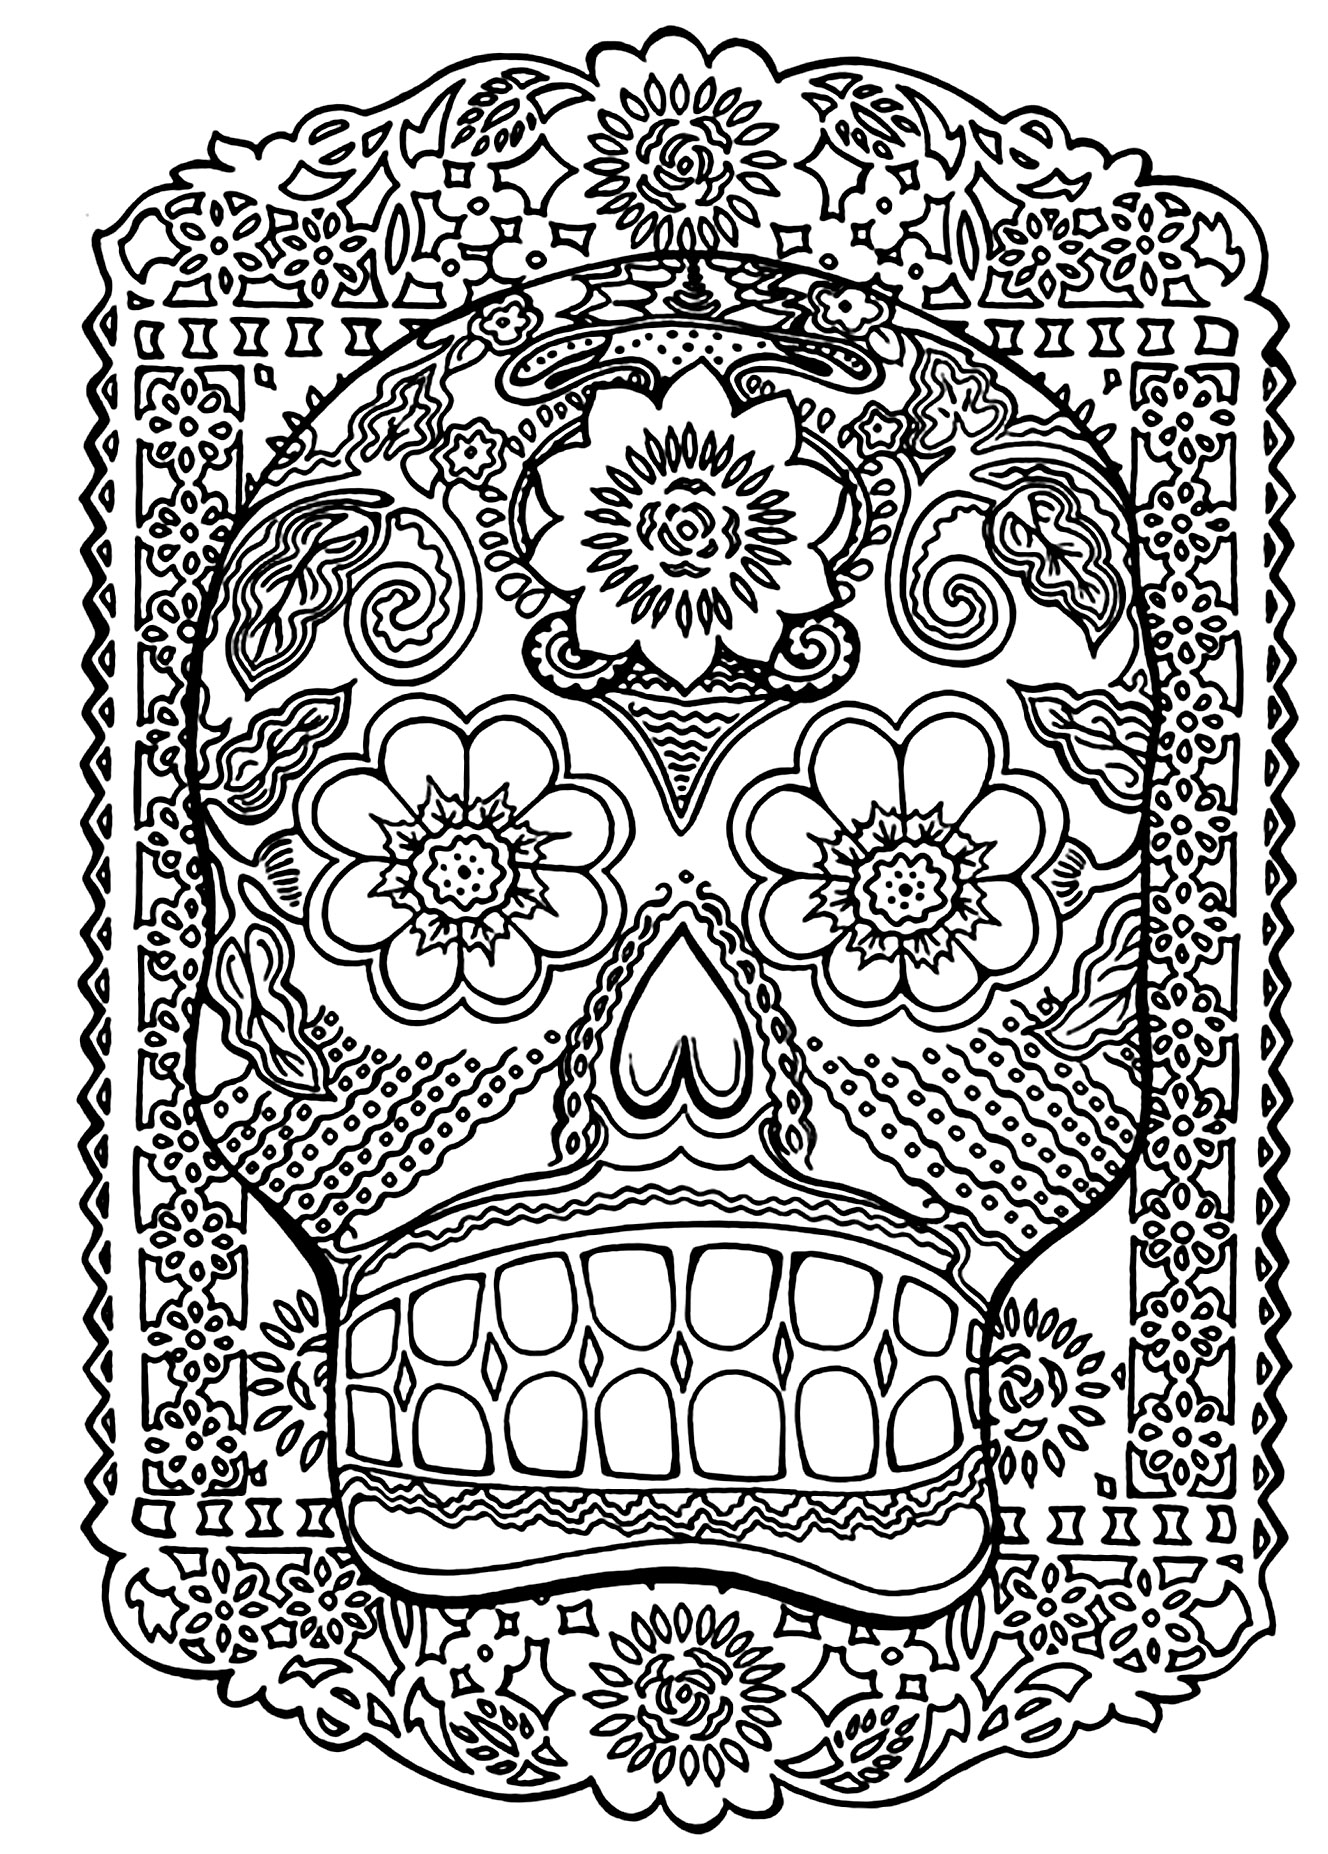 skull head antistress image with dias de los muertos skull from the